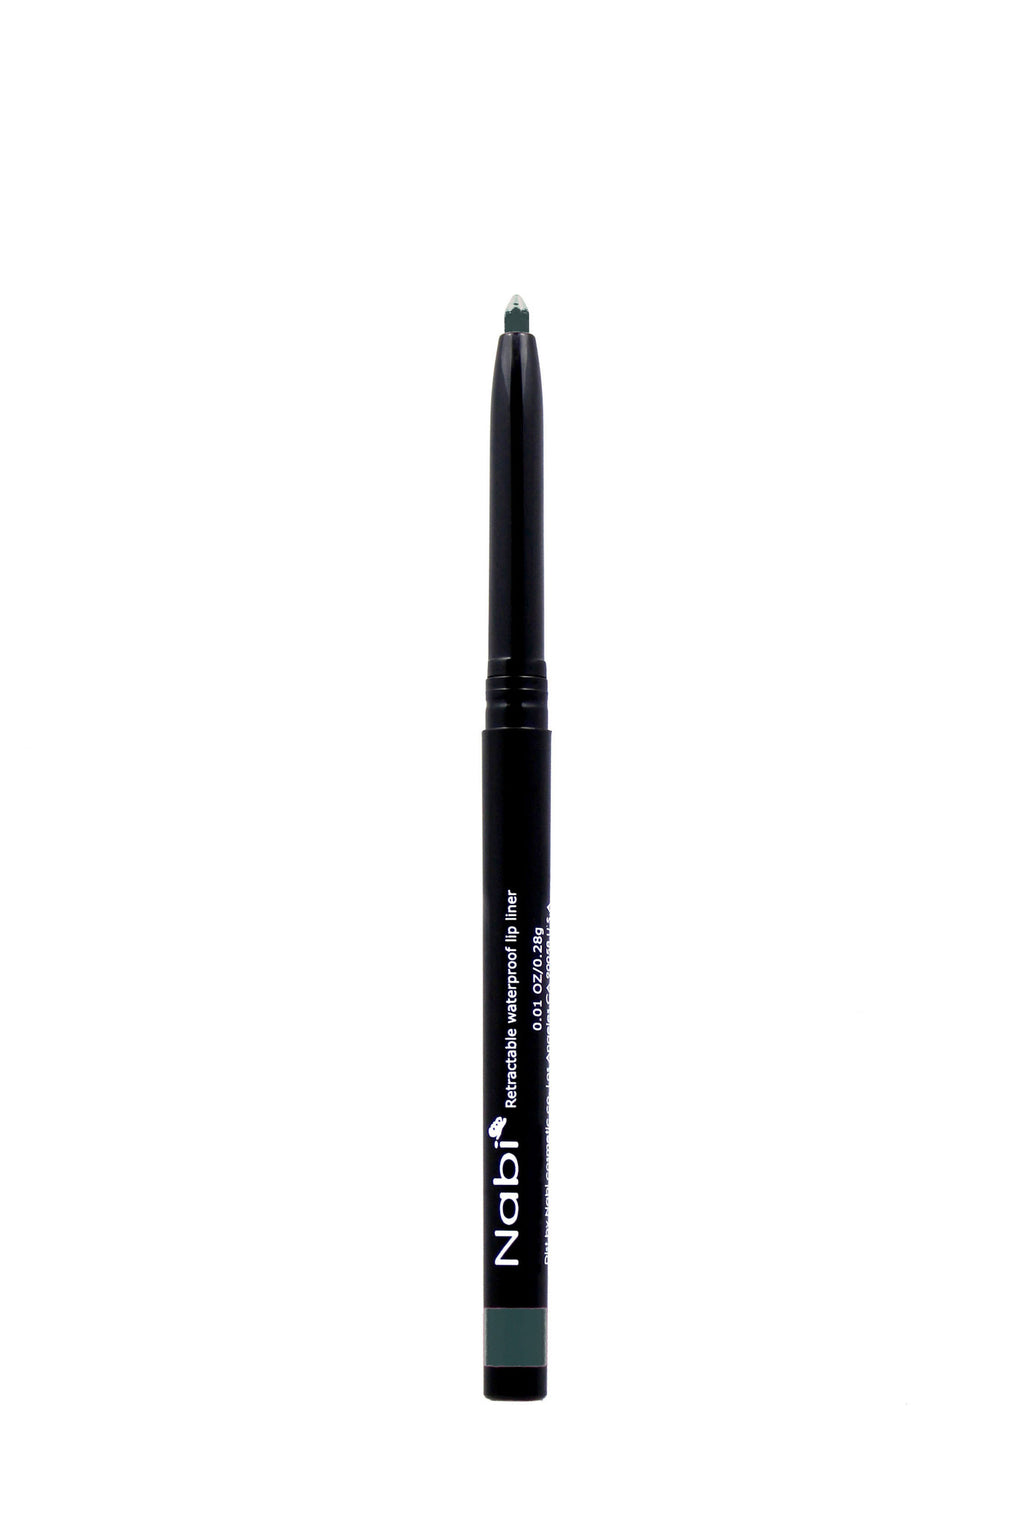 AP15 - Retractable Auto Eye Liner Pencil Charcoal Grey